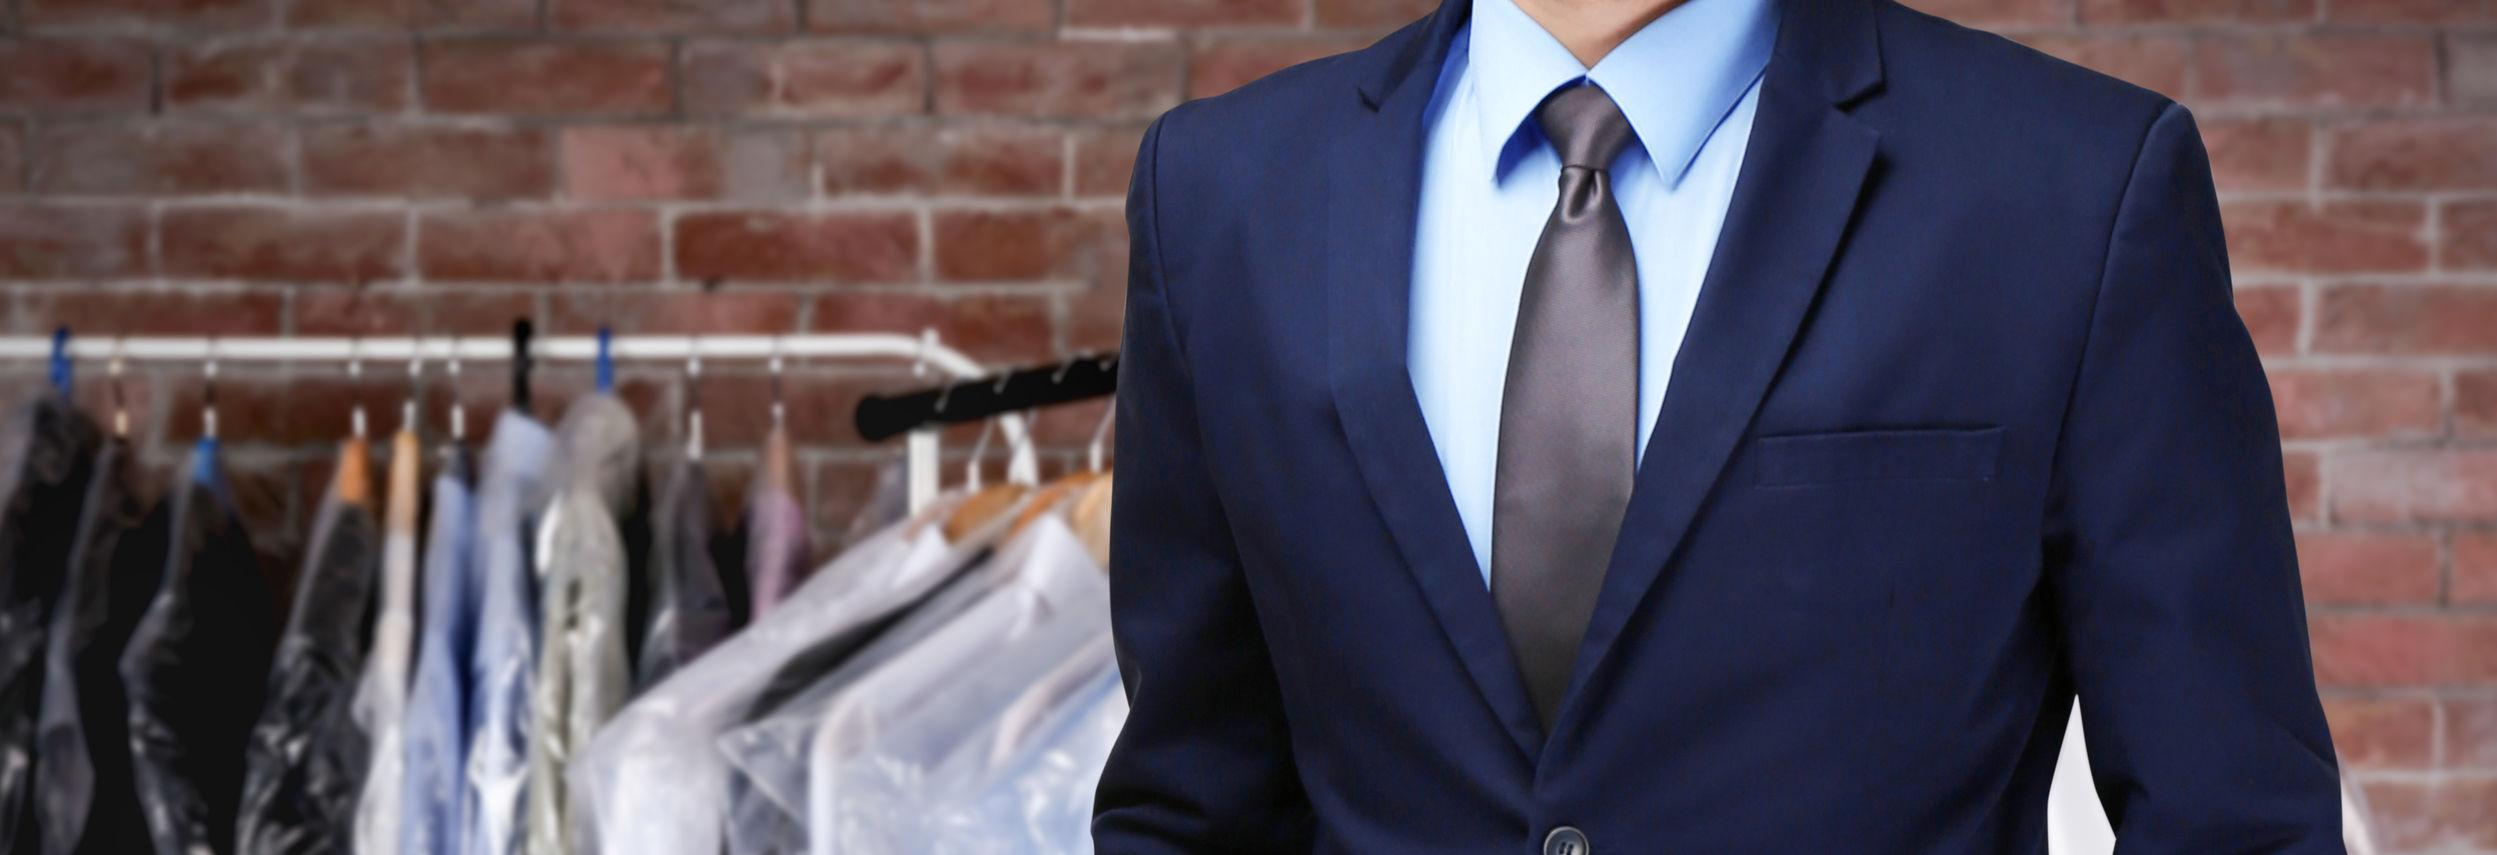 Newport north cleaners Newport beach ca dry cleaning coupons near me